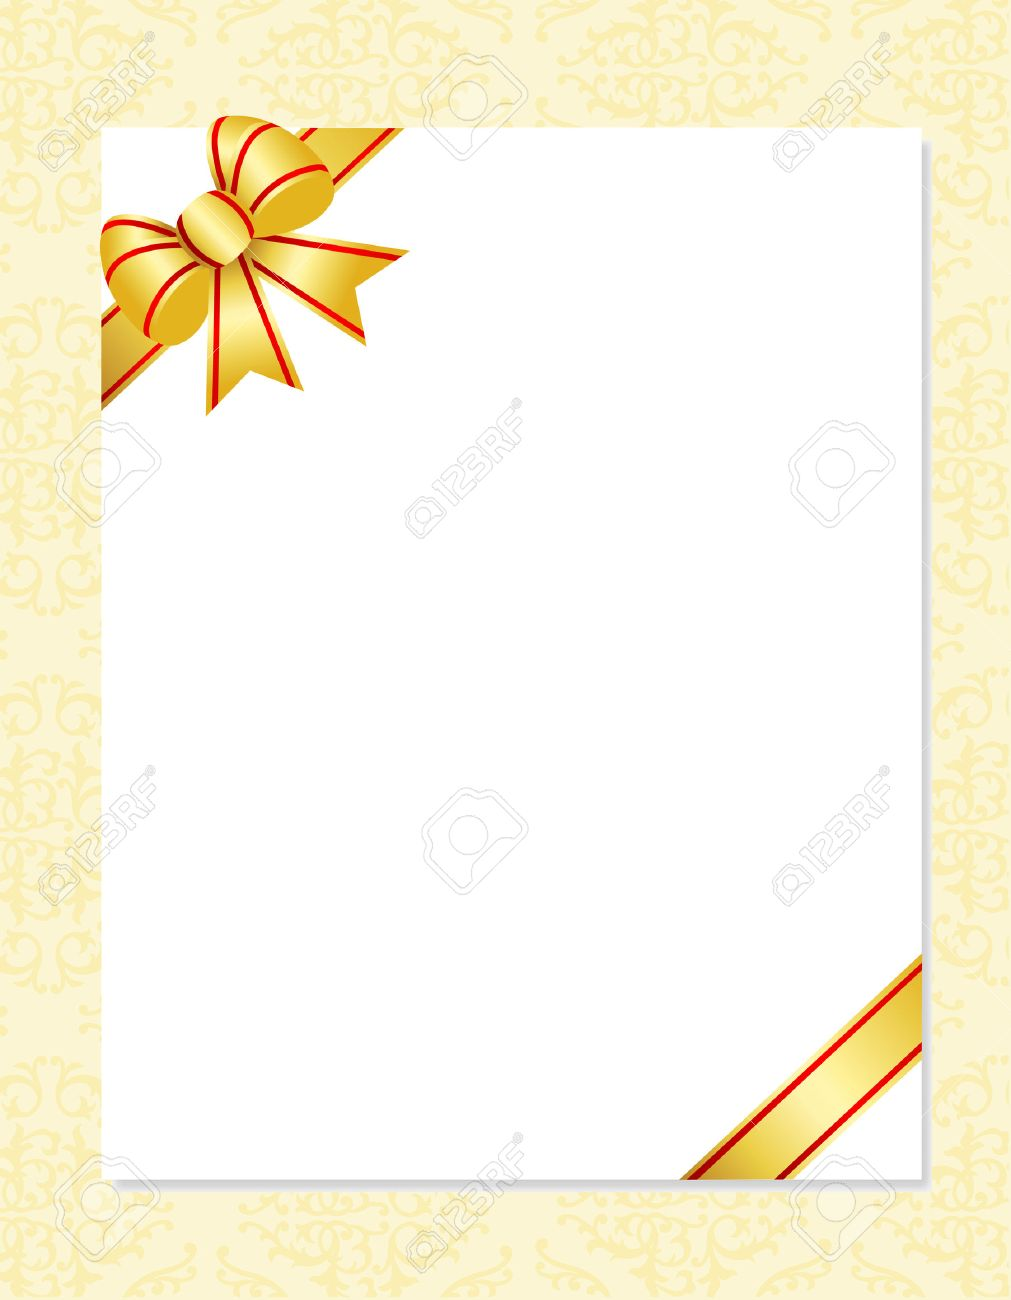 Invitation Card Background With Gold Ribbon Bow And Ornamental